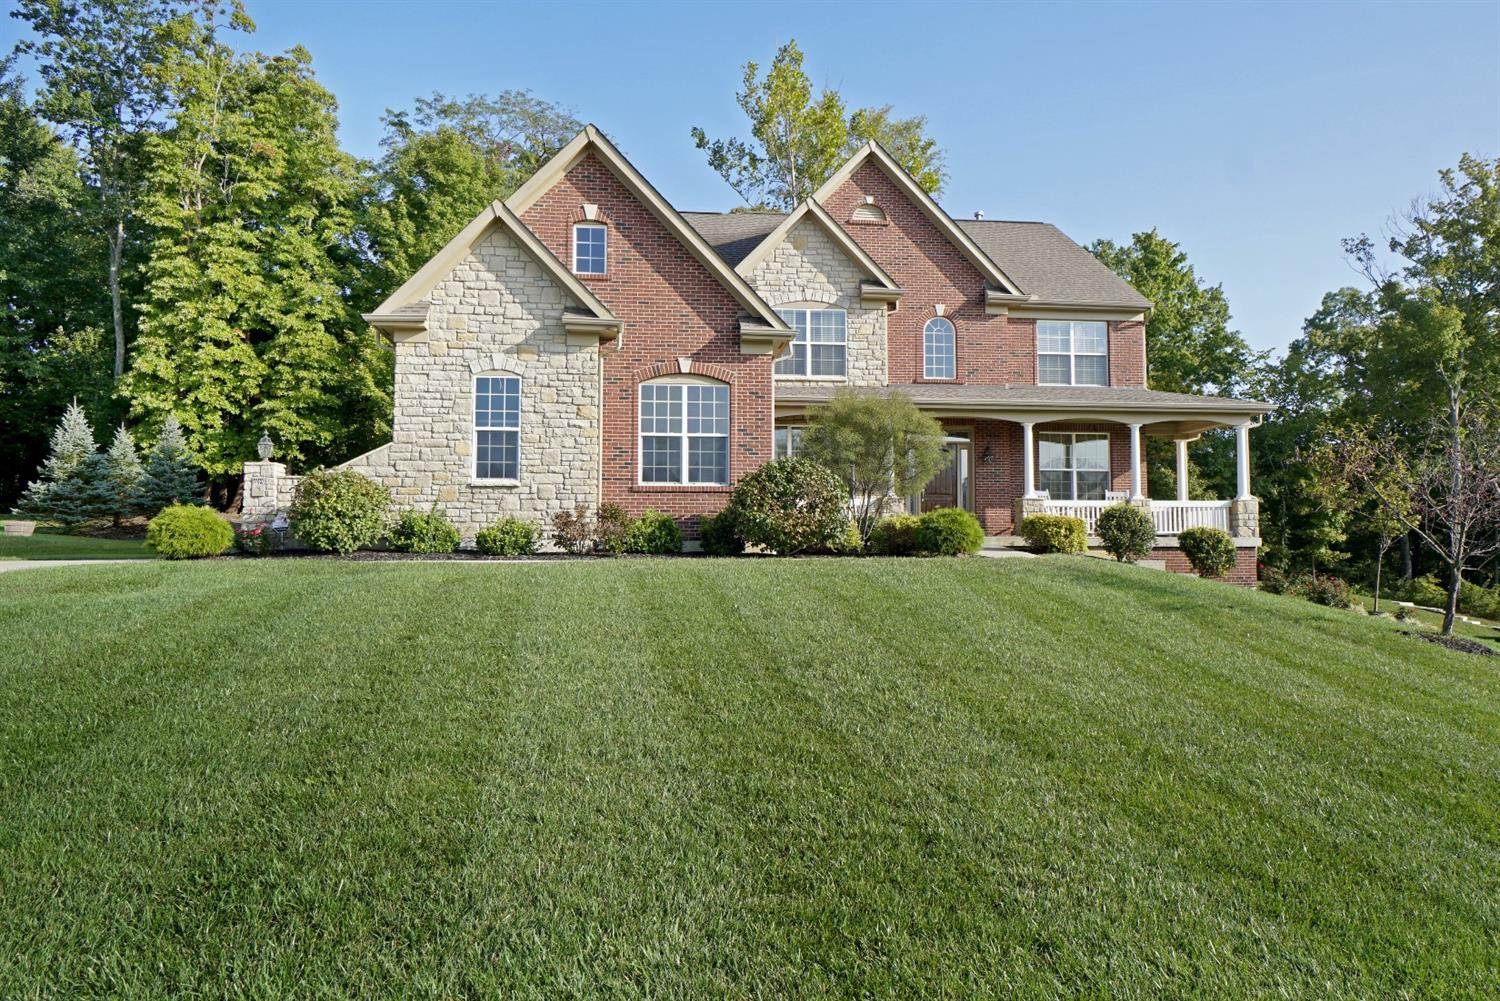 11196 Loveland Trace Ct Symmes Twp., OH